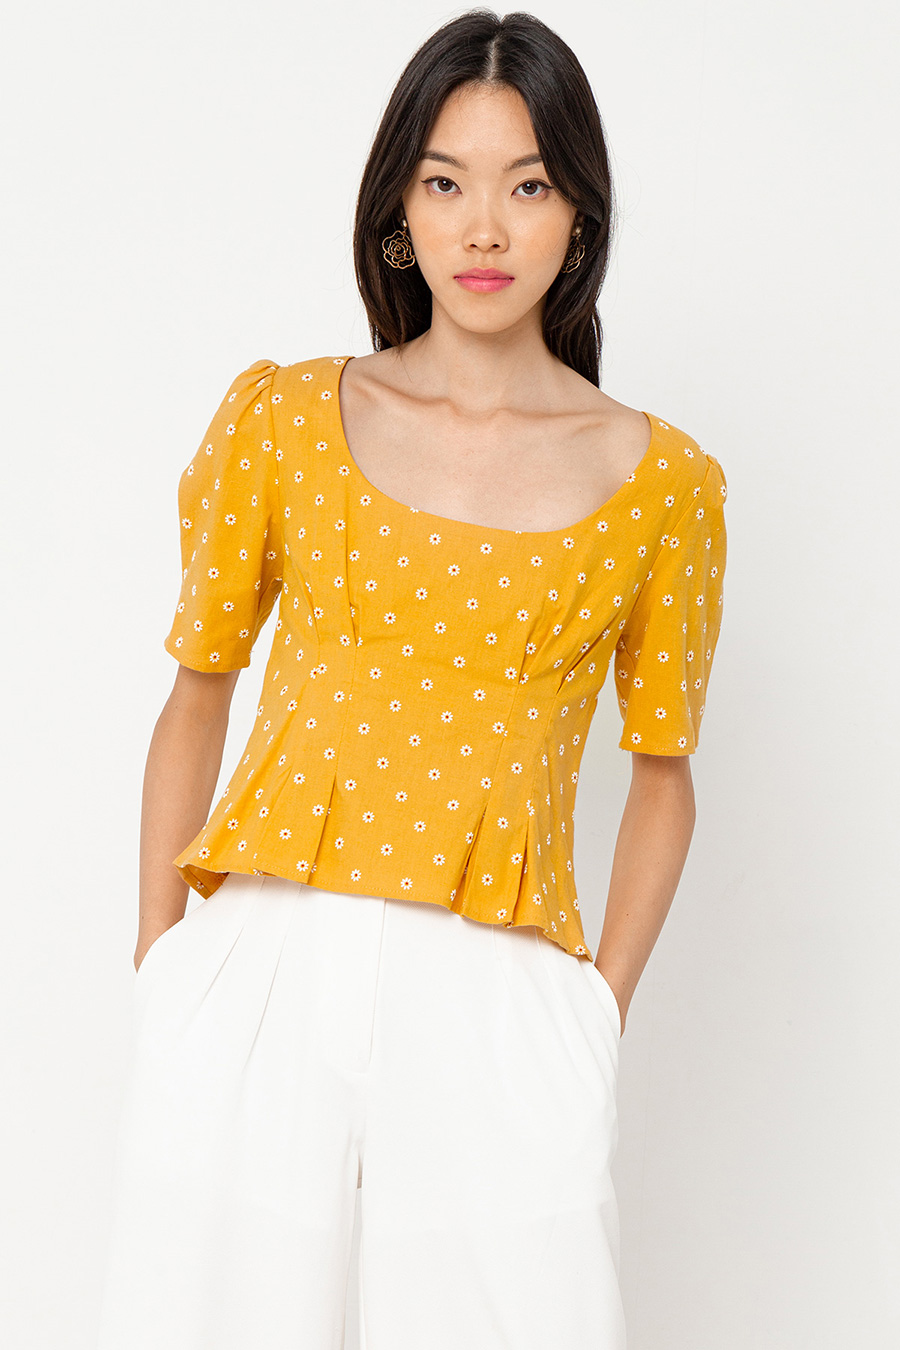 LAURA TOP - DAISY